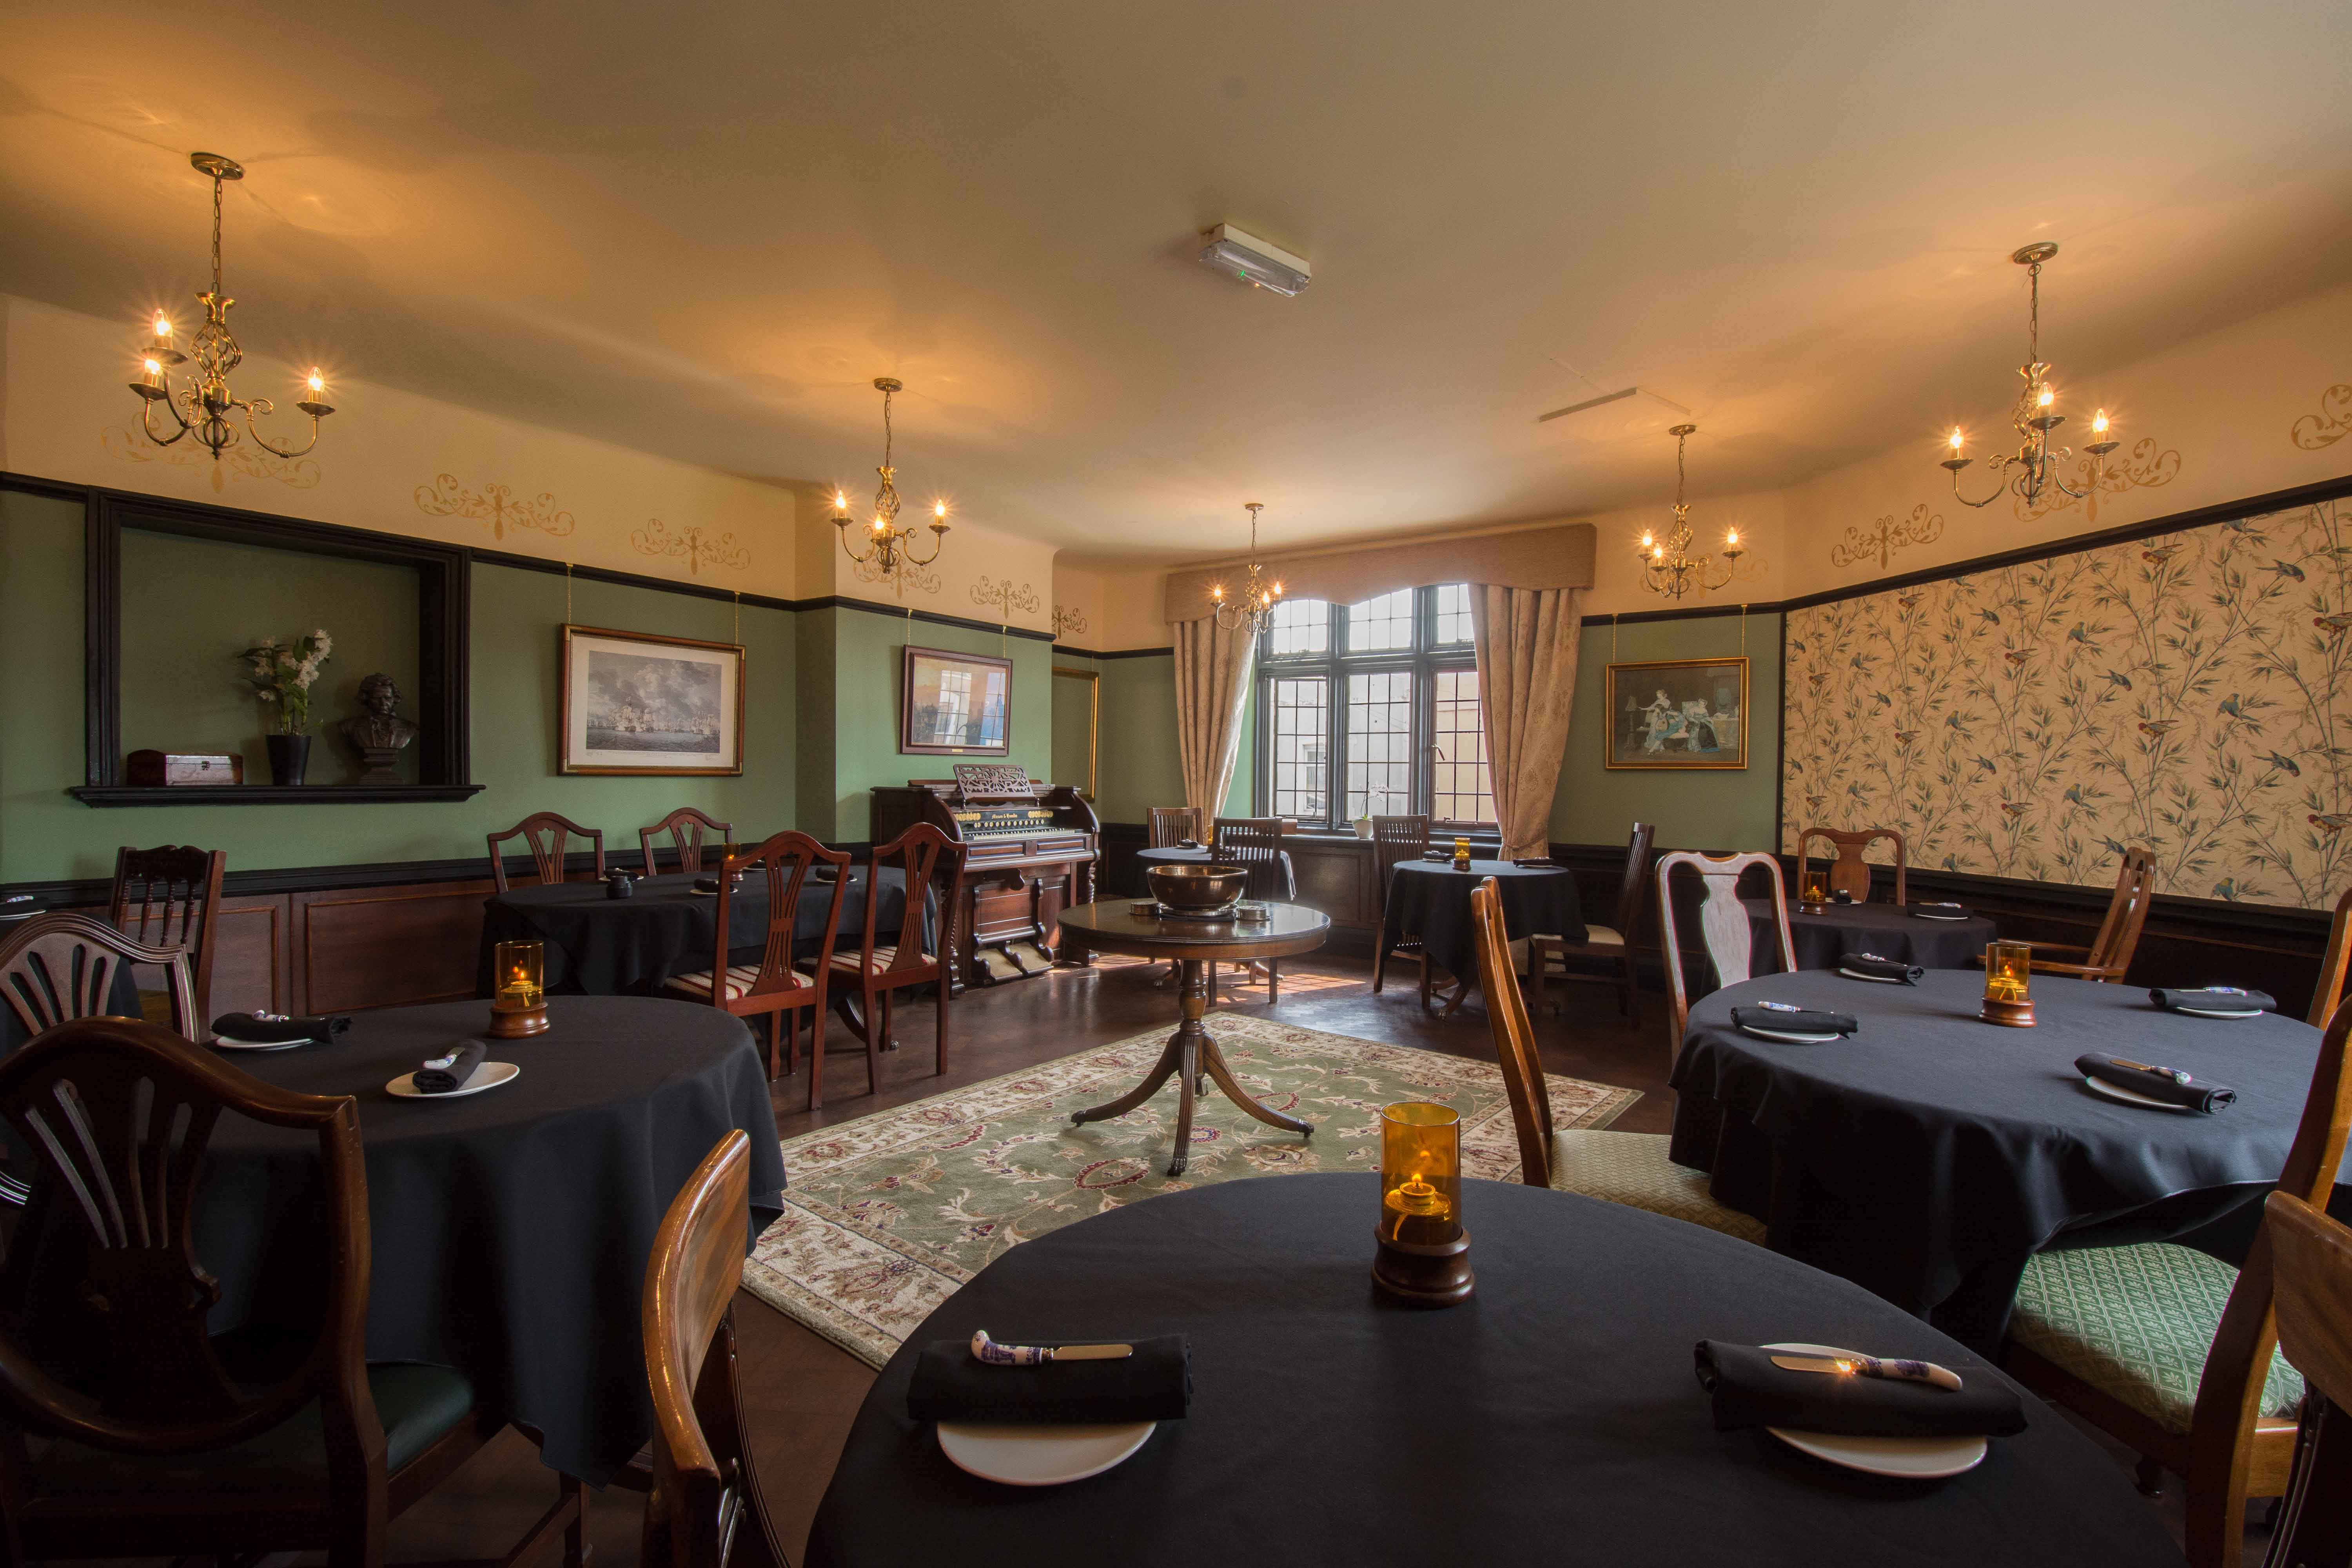 Historical Dining Rooms (Restaurant Review)